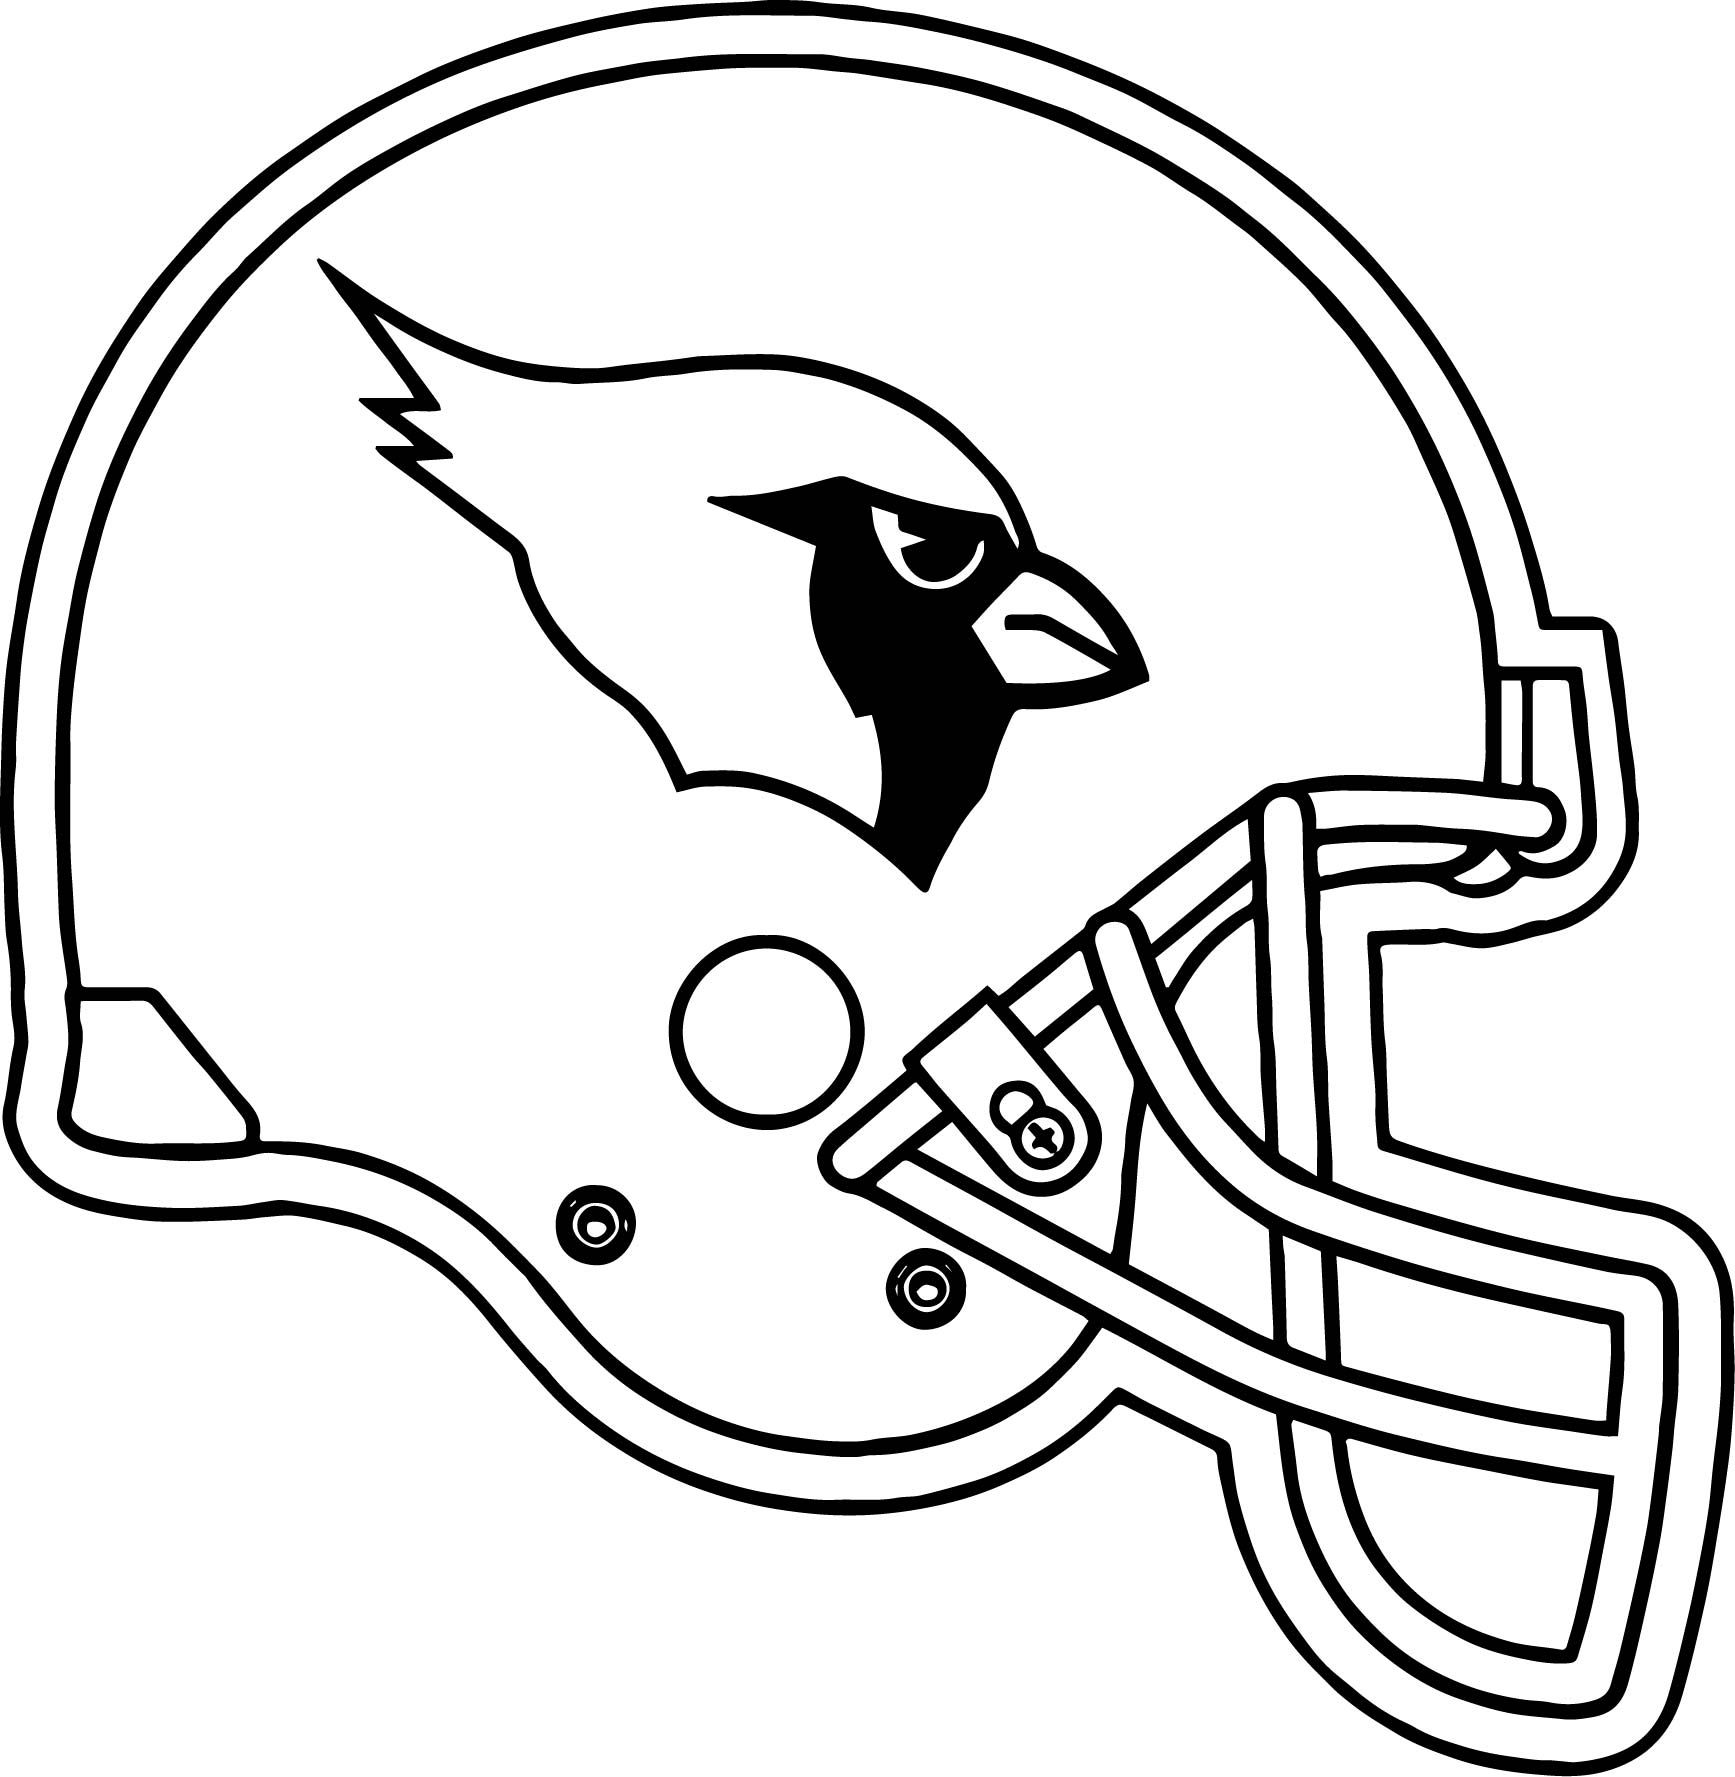 Cool Arizona Cardinals Helmet Coloring Page With Images